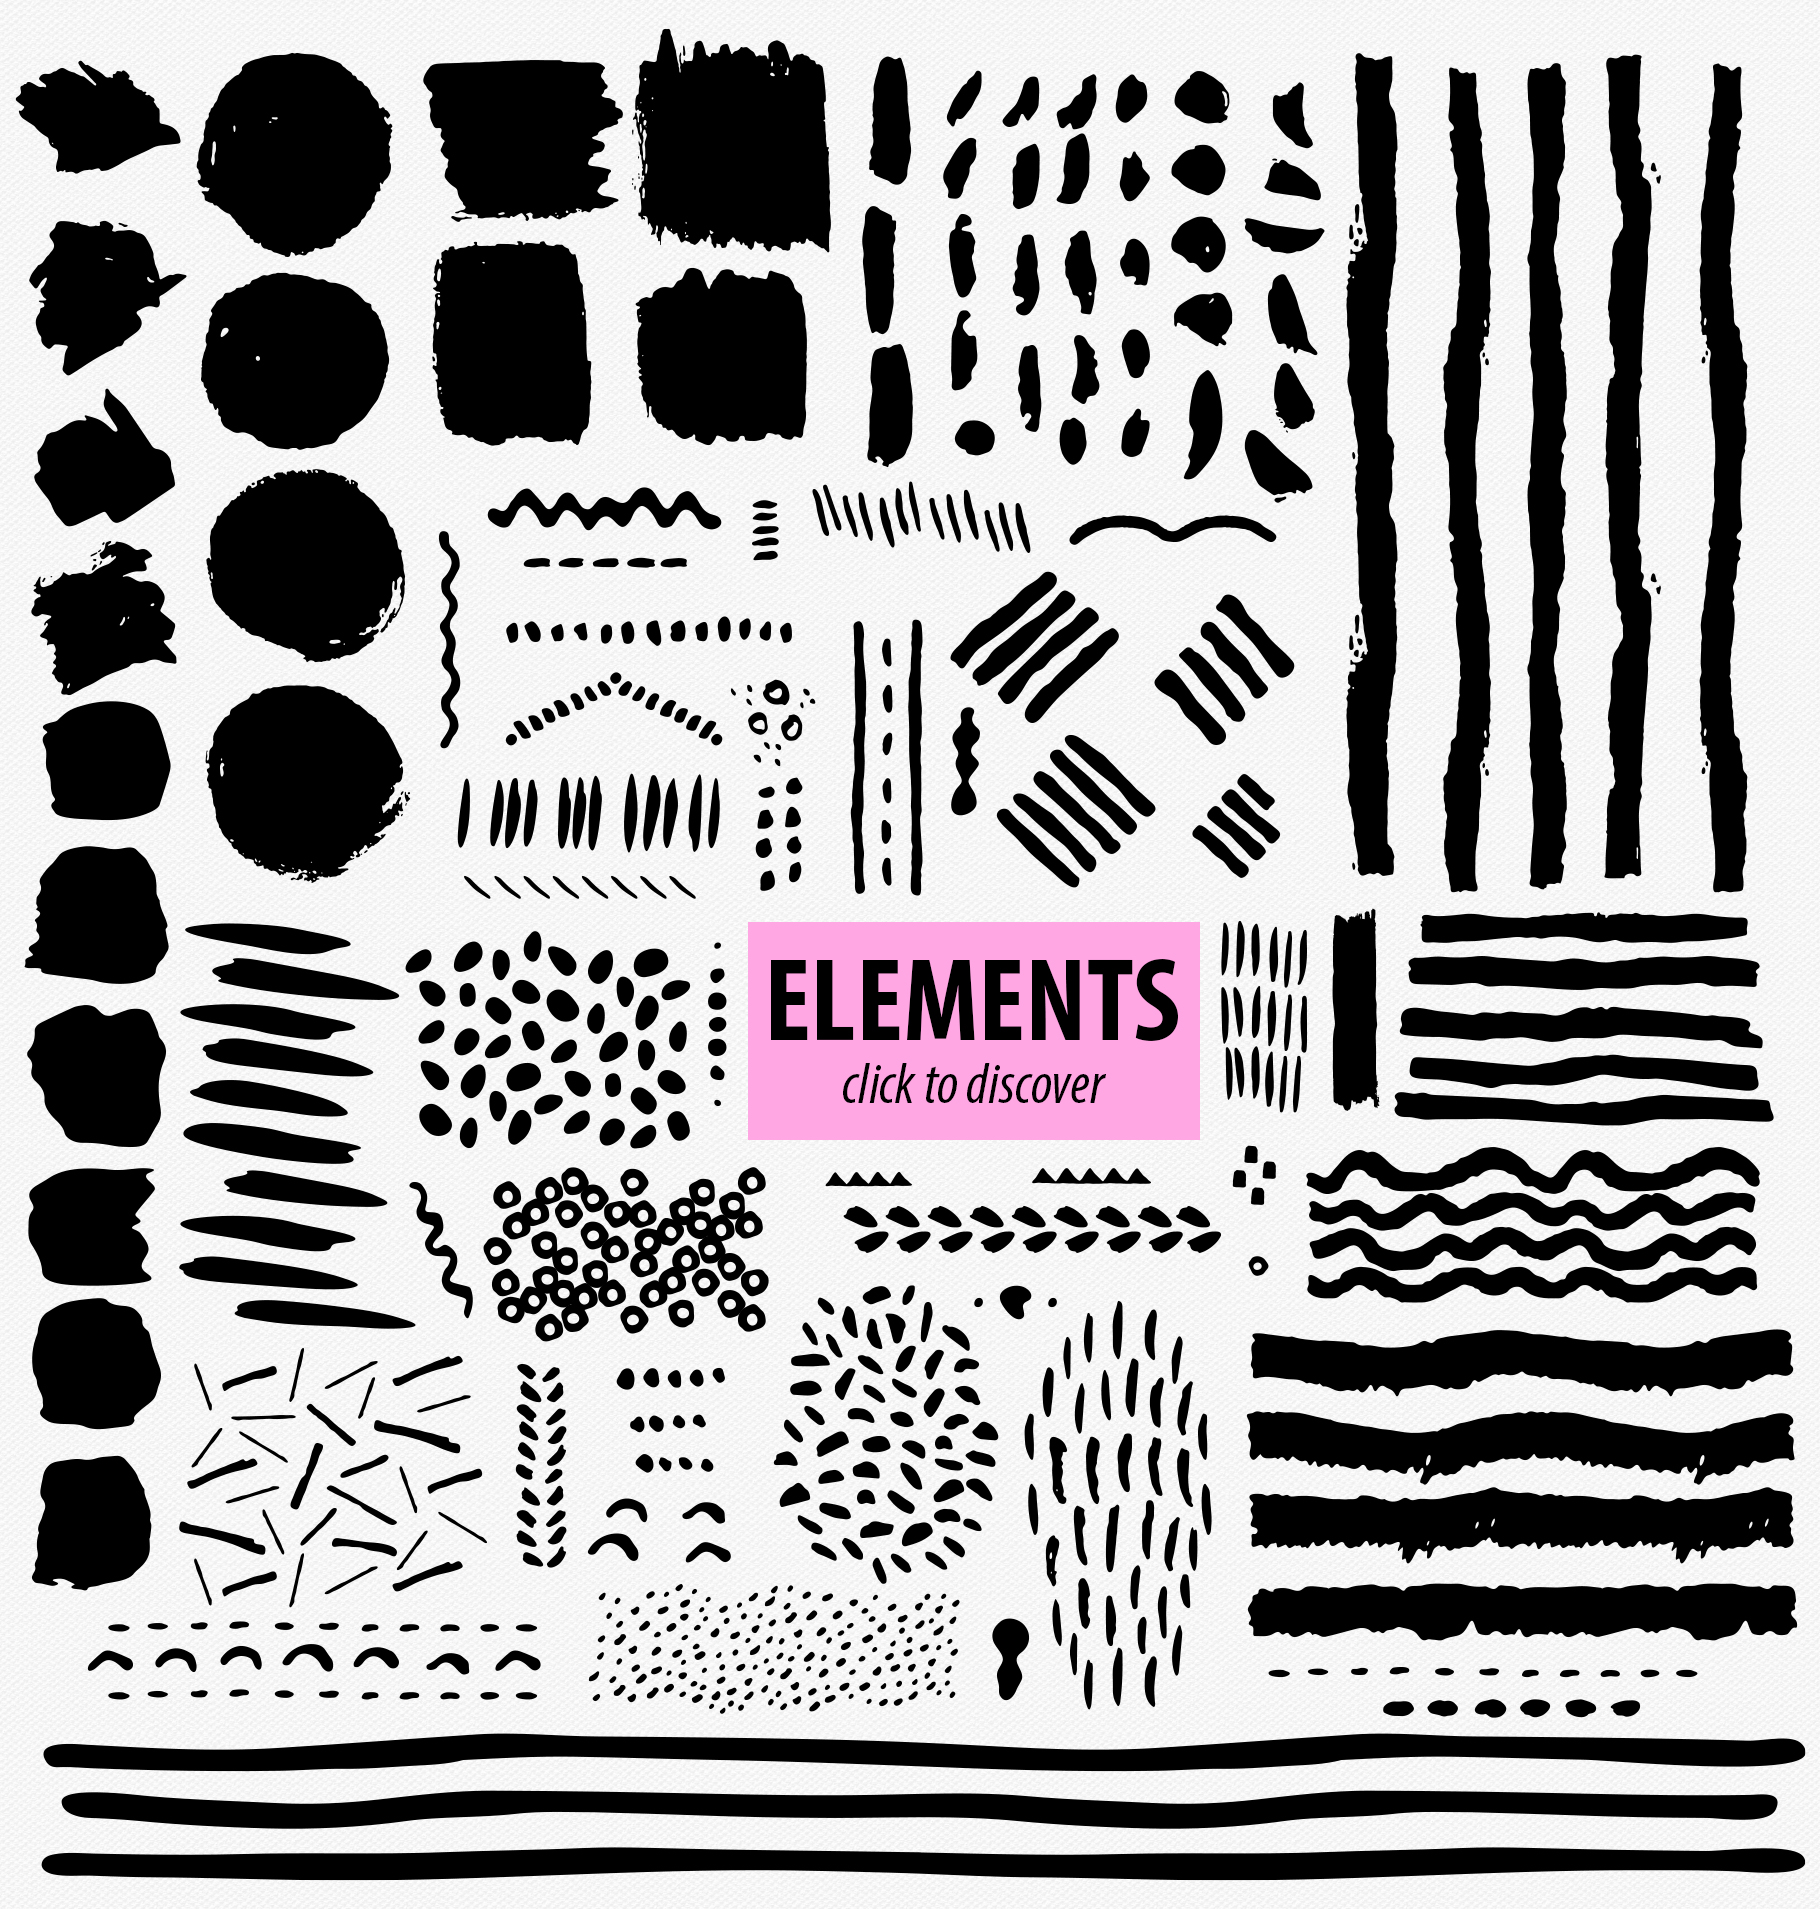 Abstract Brushstroke Ink Patterns, Artboards & Elements example image 16